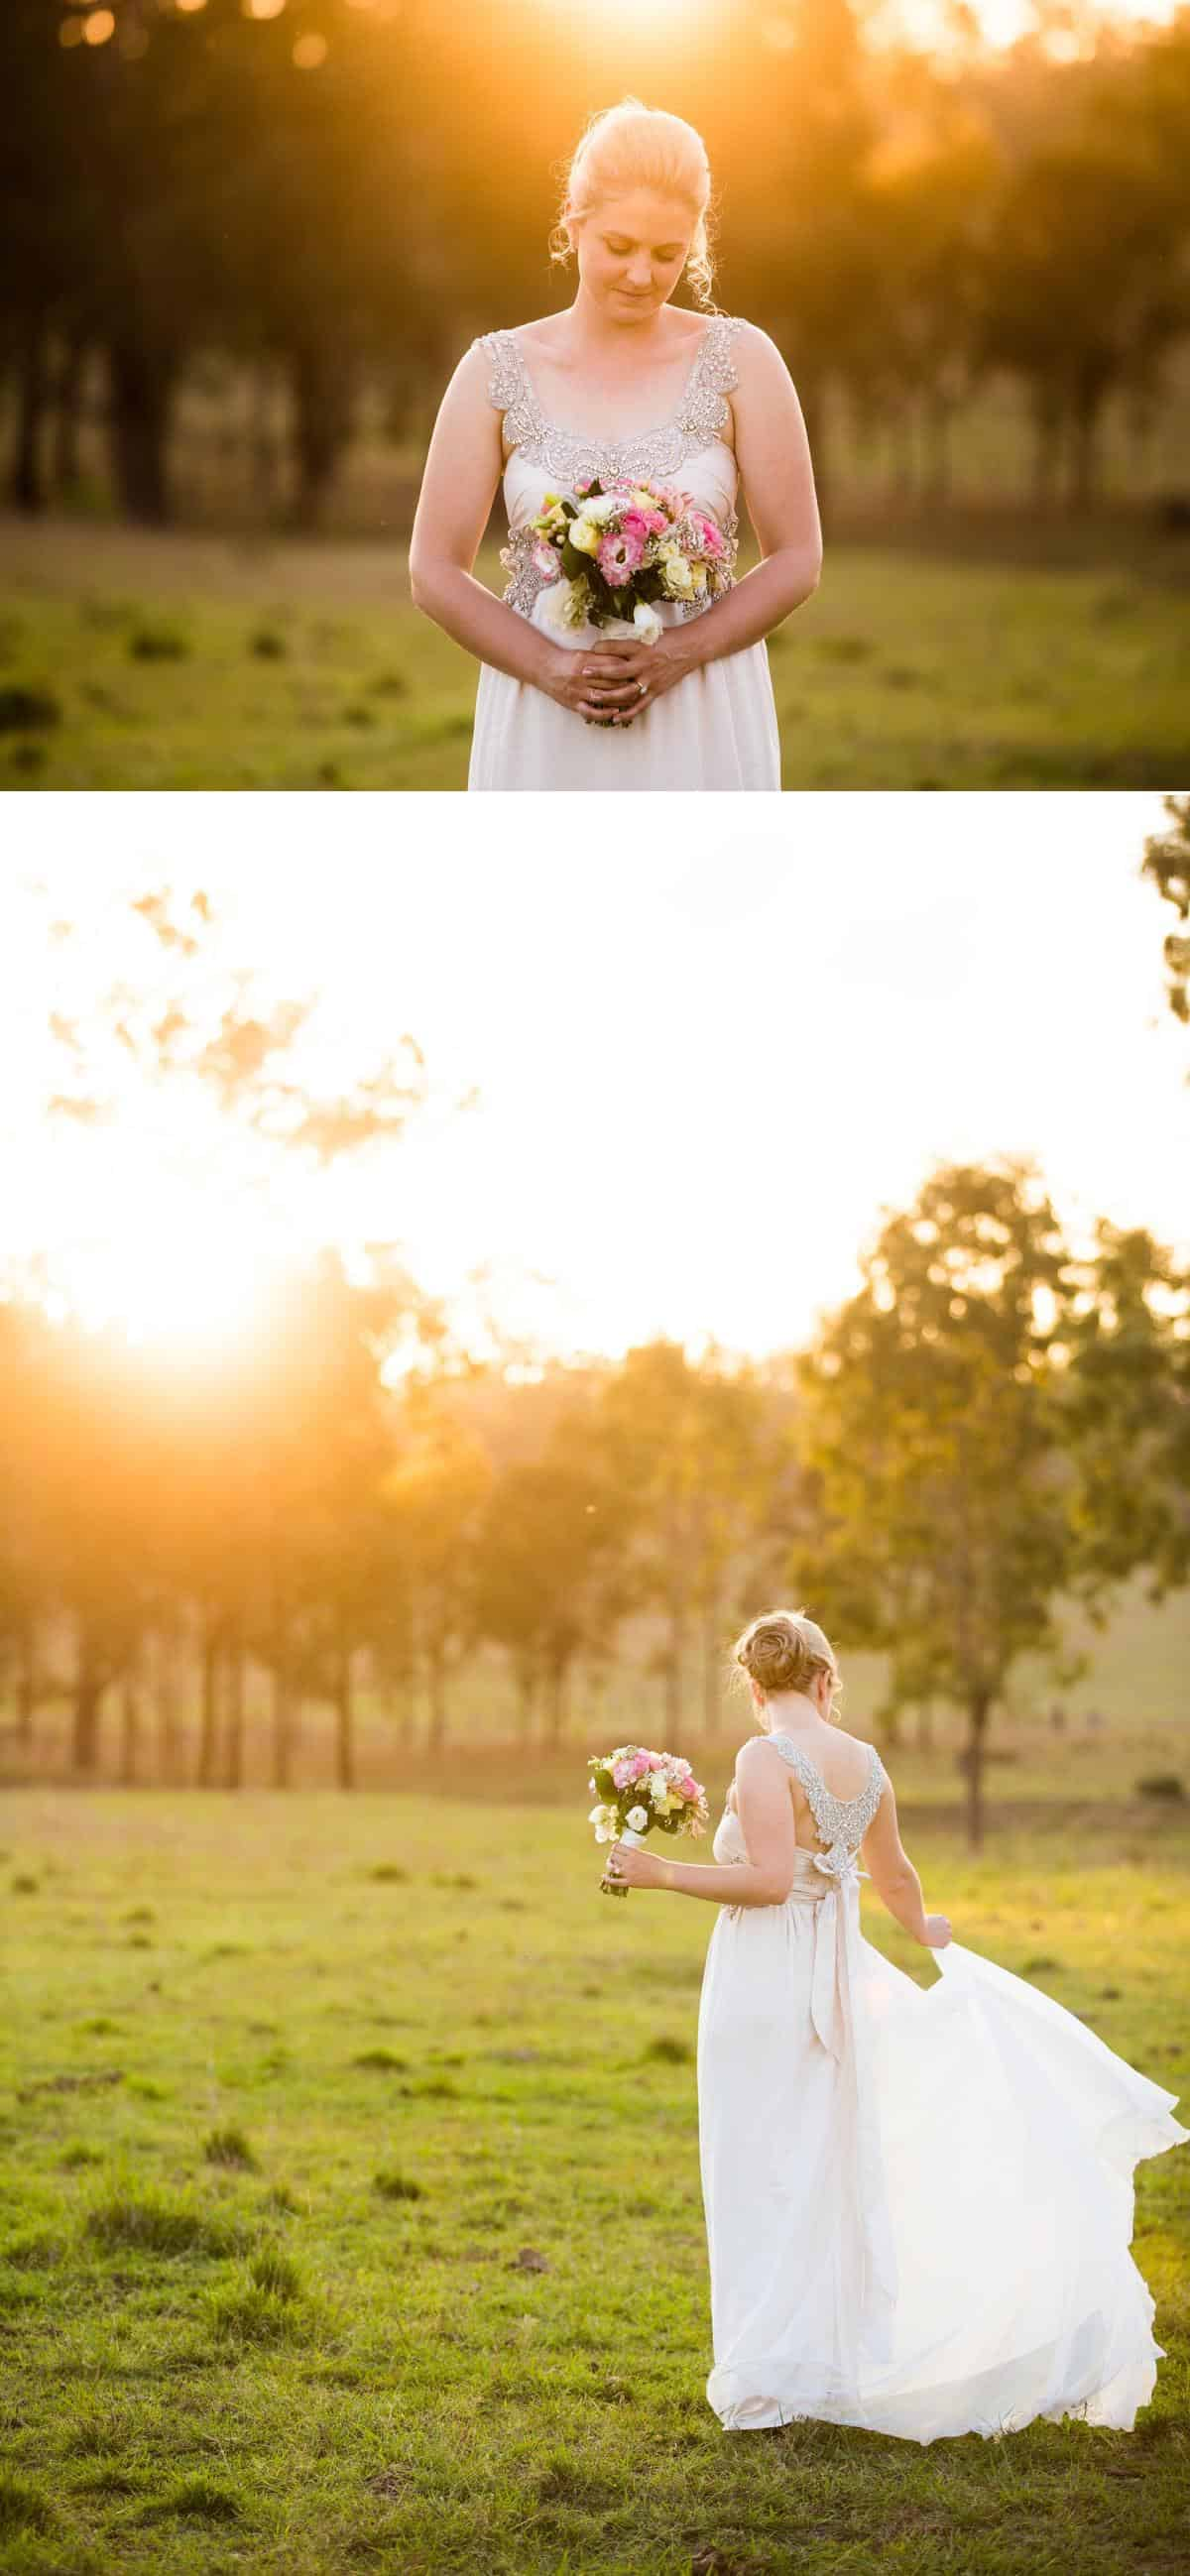 Anna Campbell Wedding Dresses www.benandhopeweddings.com.au